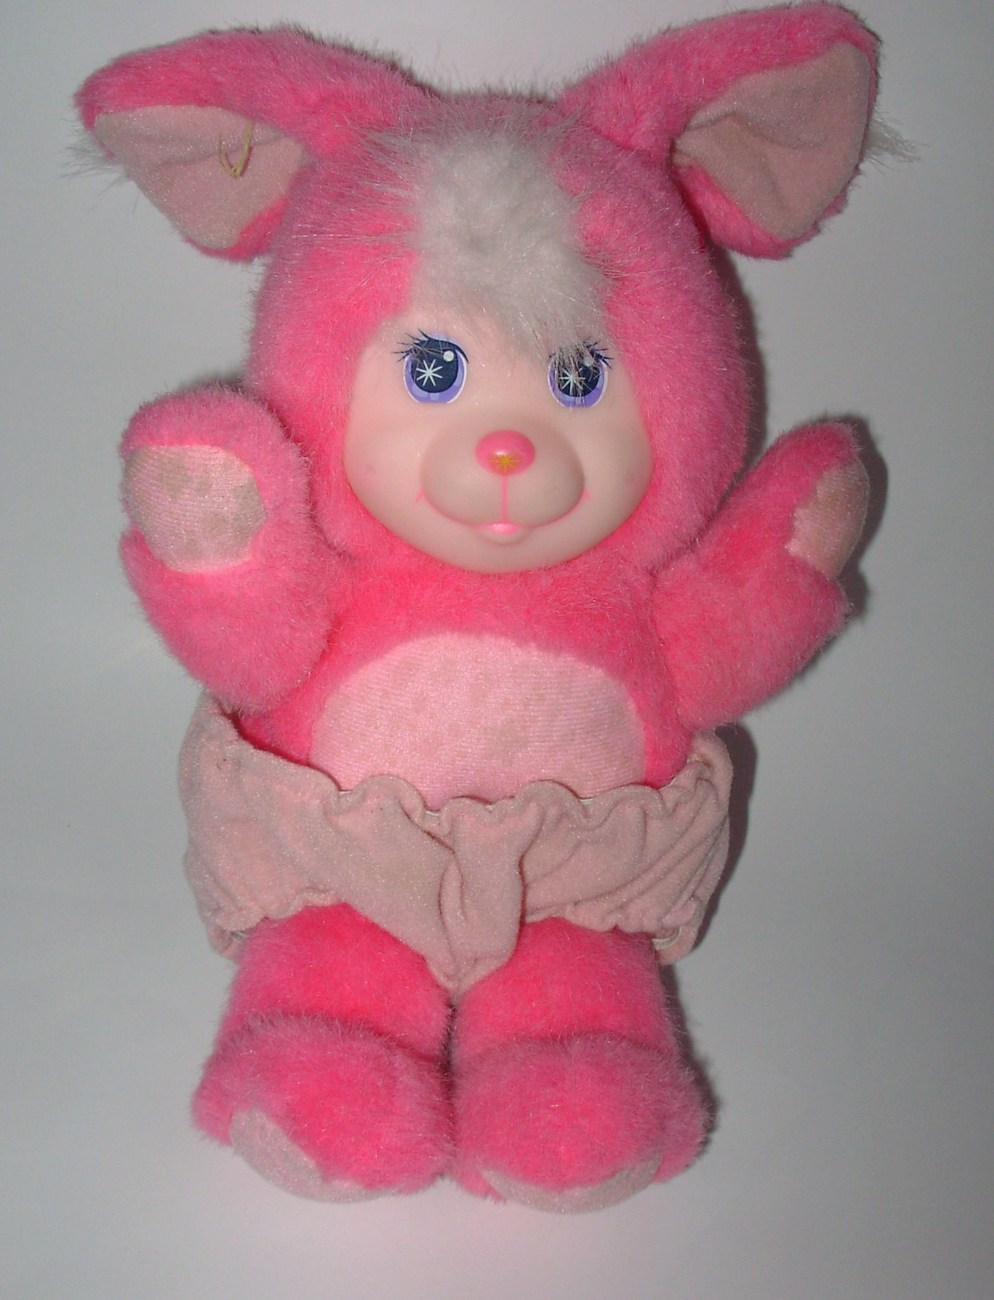 Mattel Magic Nursery Pet Pink Bunny Color Change Plush Stuffed Animal Vintage